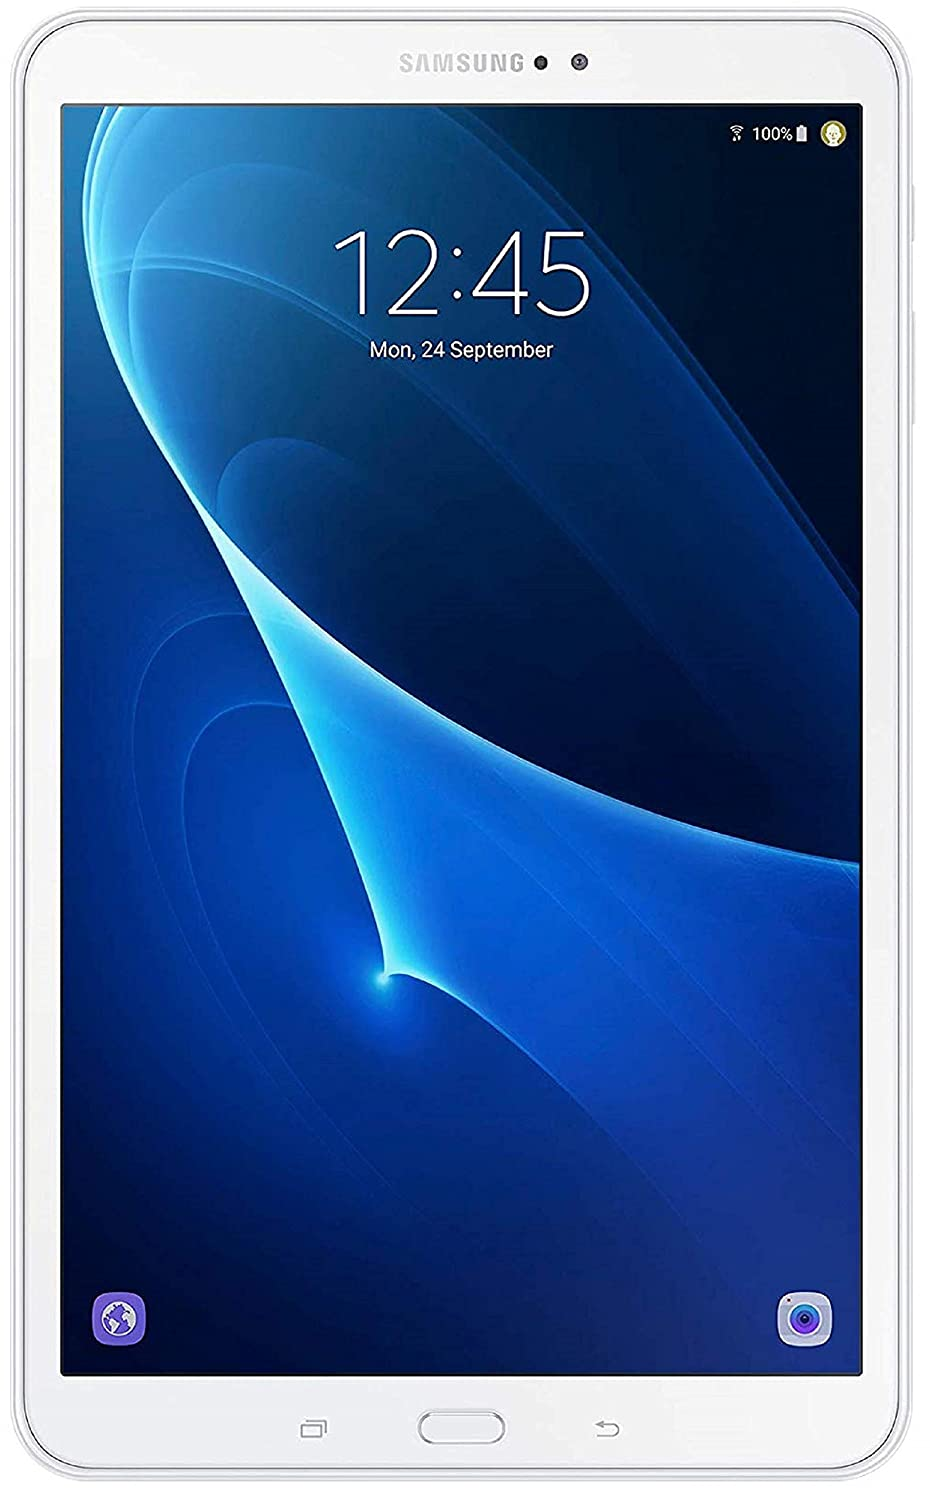 Samsung Galaxy Tab A6 SM-T280 - Tablet de 7' HD (WiFi, processeur Quad-Core, 1,5 Go de RAM, stockage de 8 Go Android 5.1), Blanc